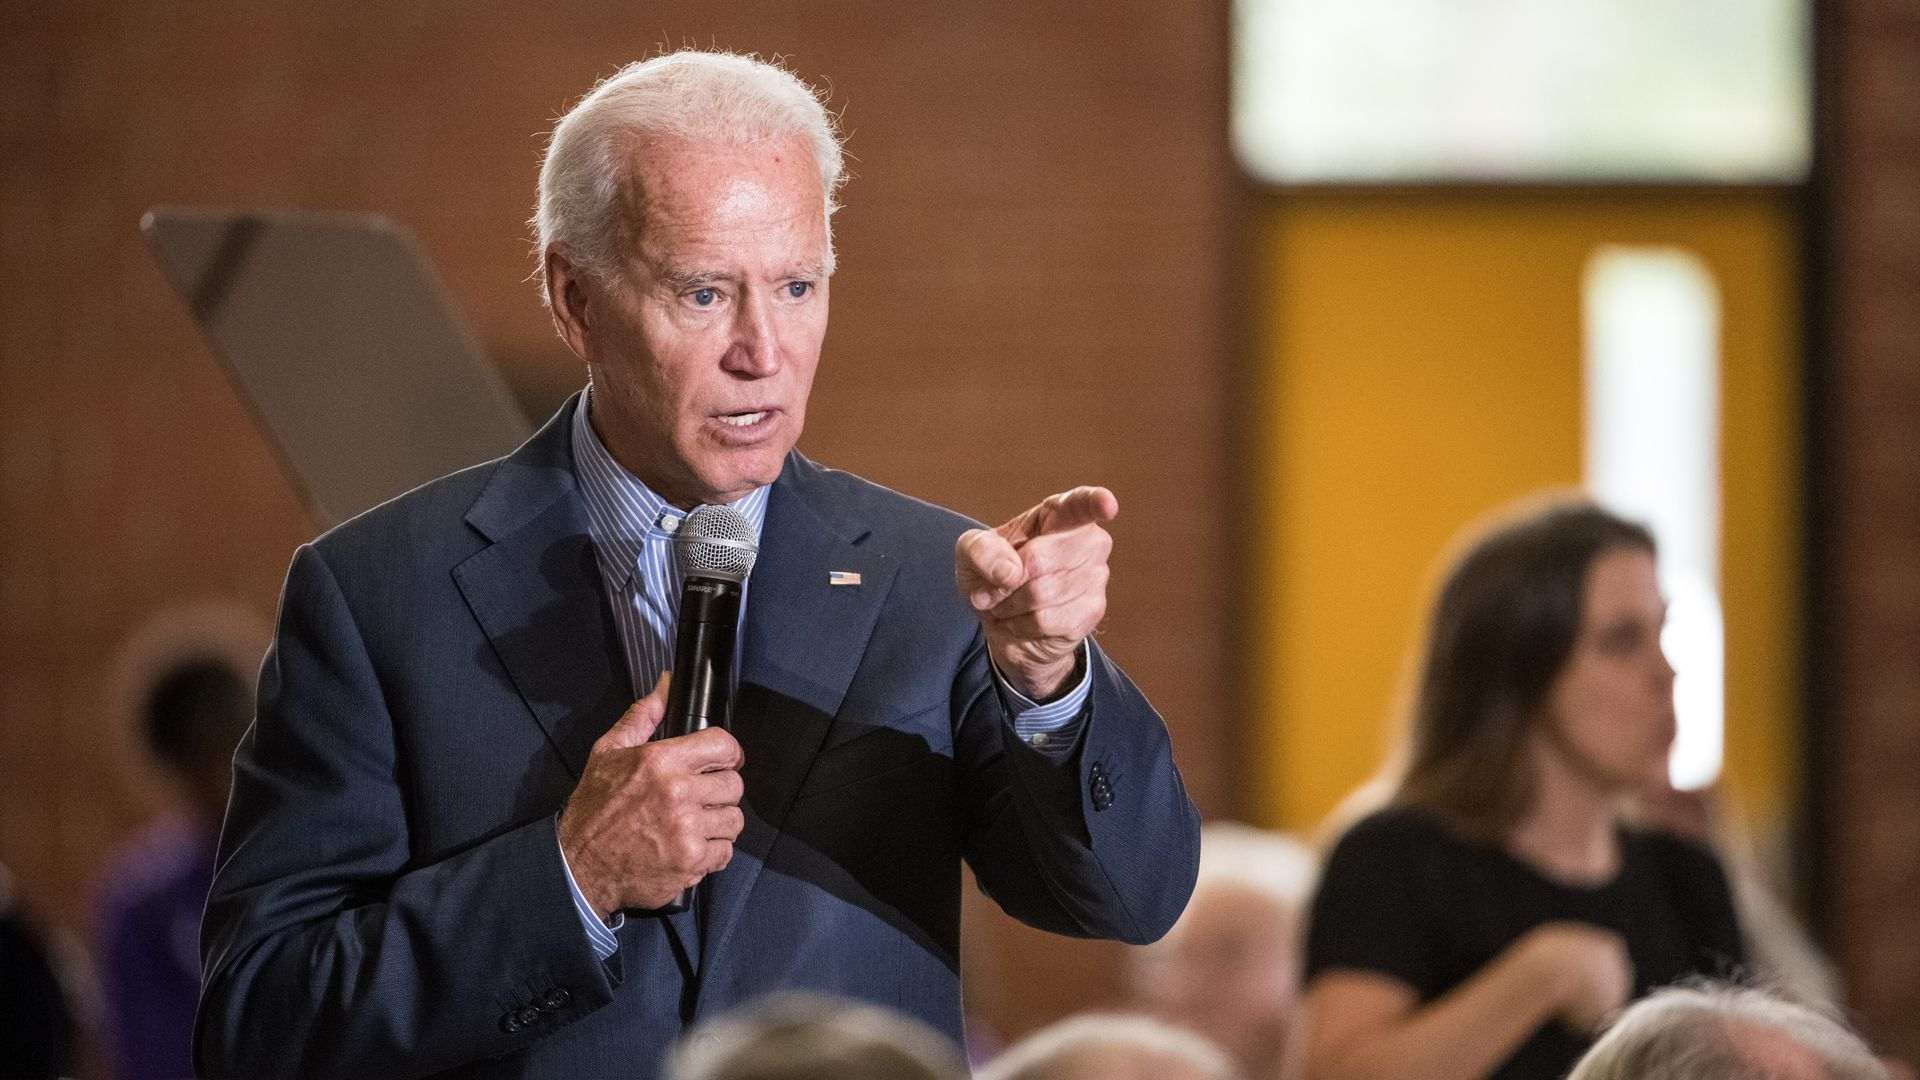 Former Vice President Joe Biden on the 2020 campaign trail in South Carolina